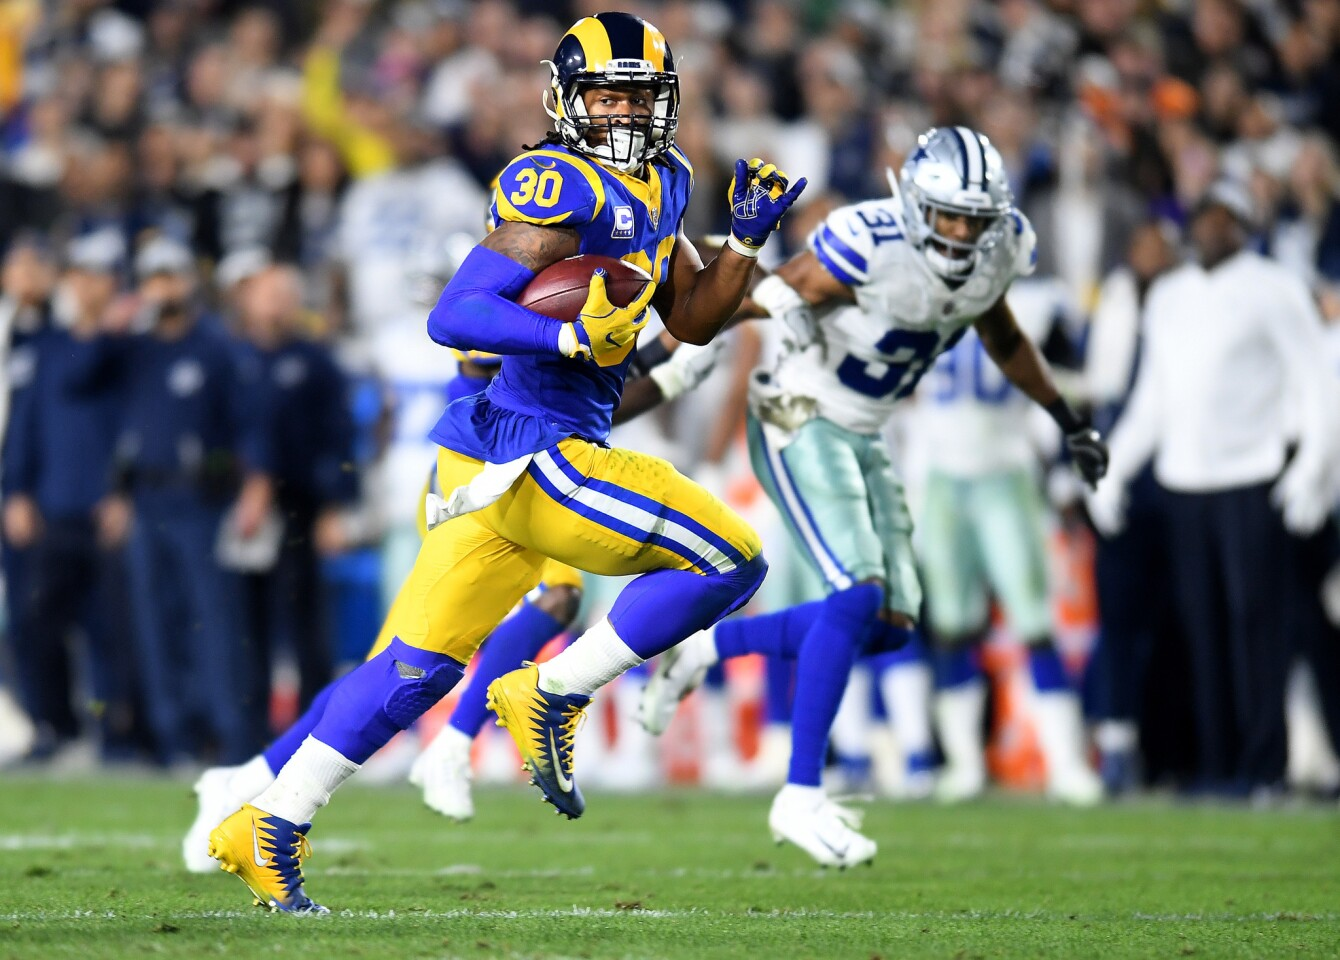 Rams running back Todd Gurley beats Dallas Cowboys cornerback Byron Jones for a 35-yard touchdown during the second quarter.